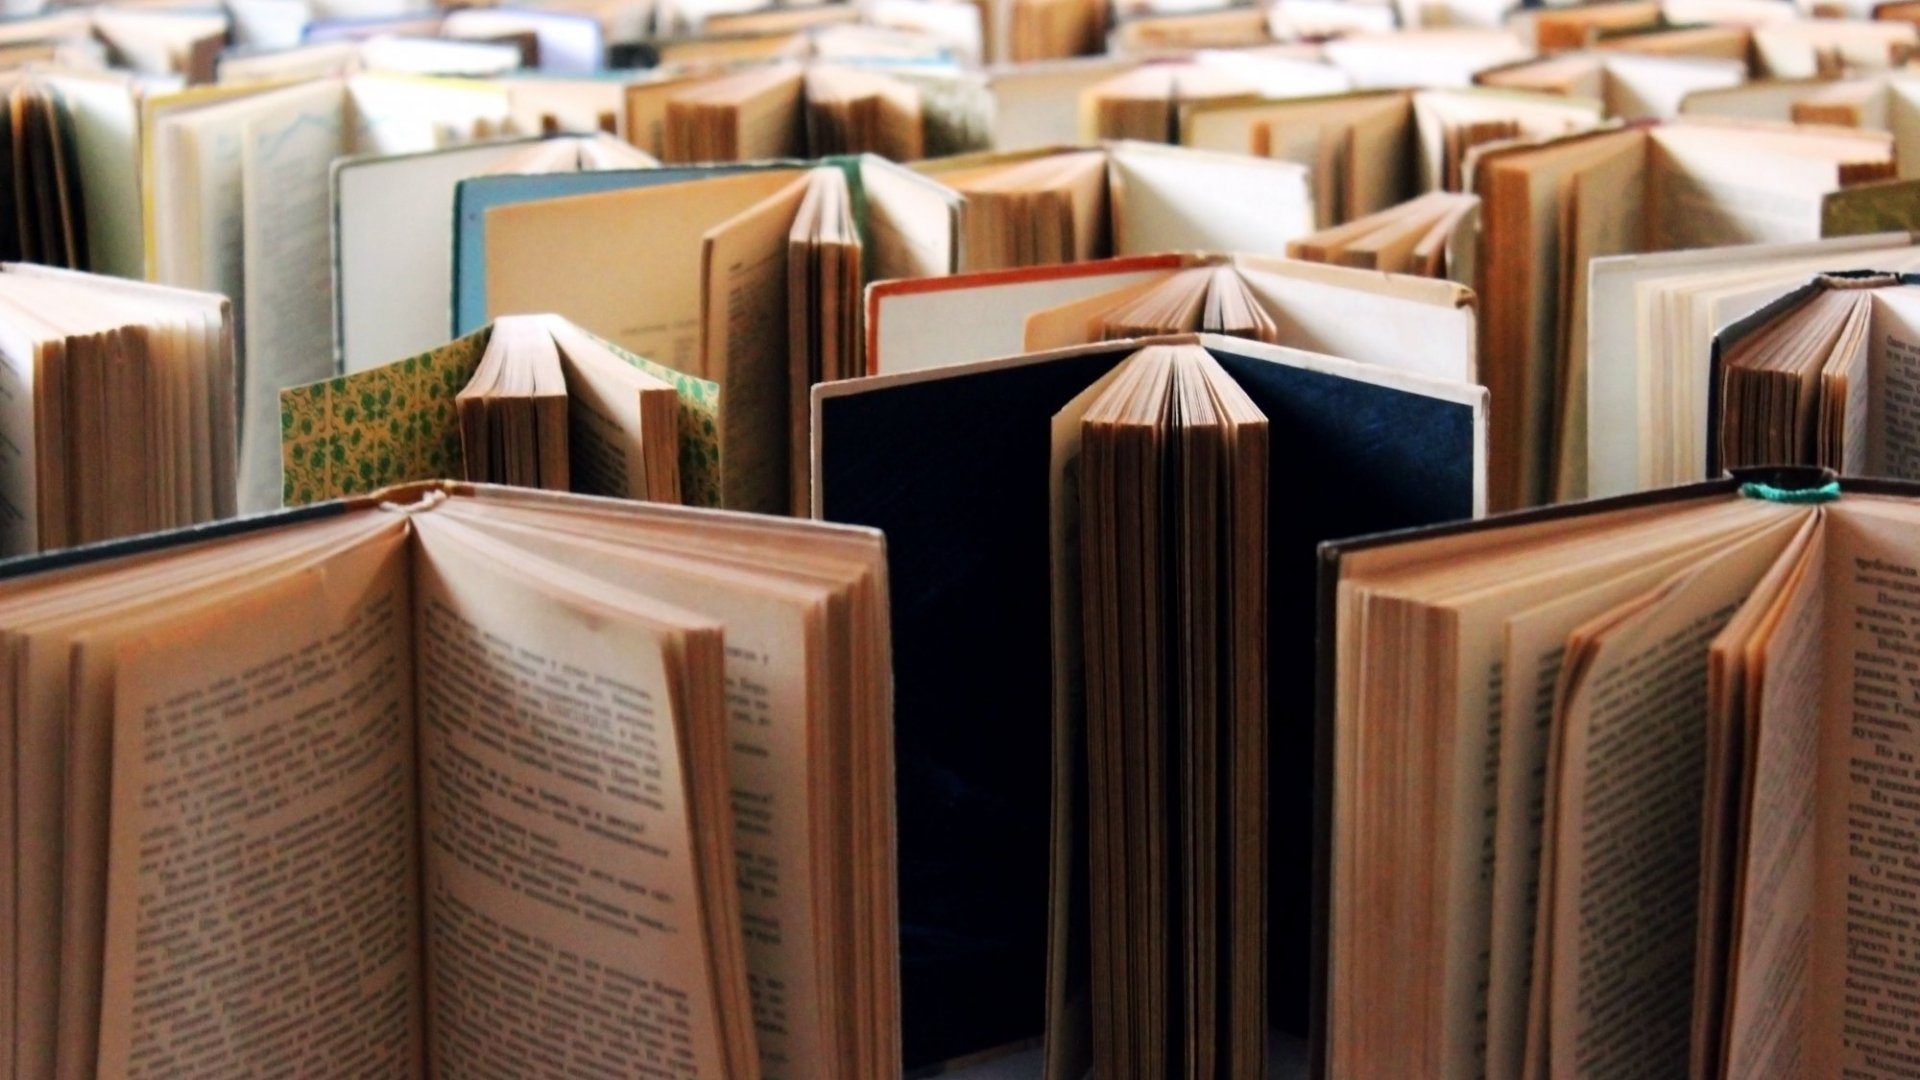 Harsh Truth Time: You'll Never Keep Up With Everything You Want to Read (So Take These 7 Simple Steps)